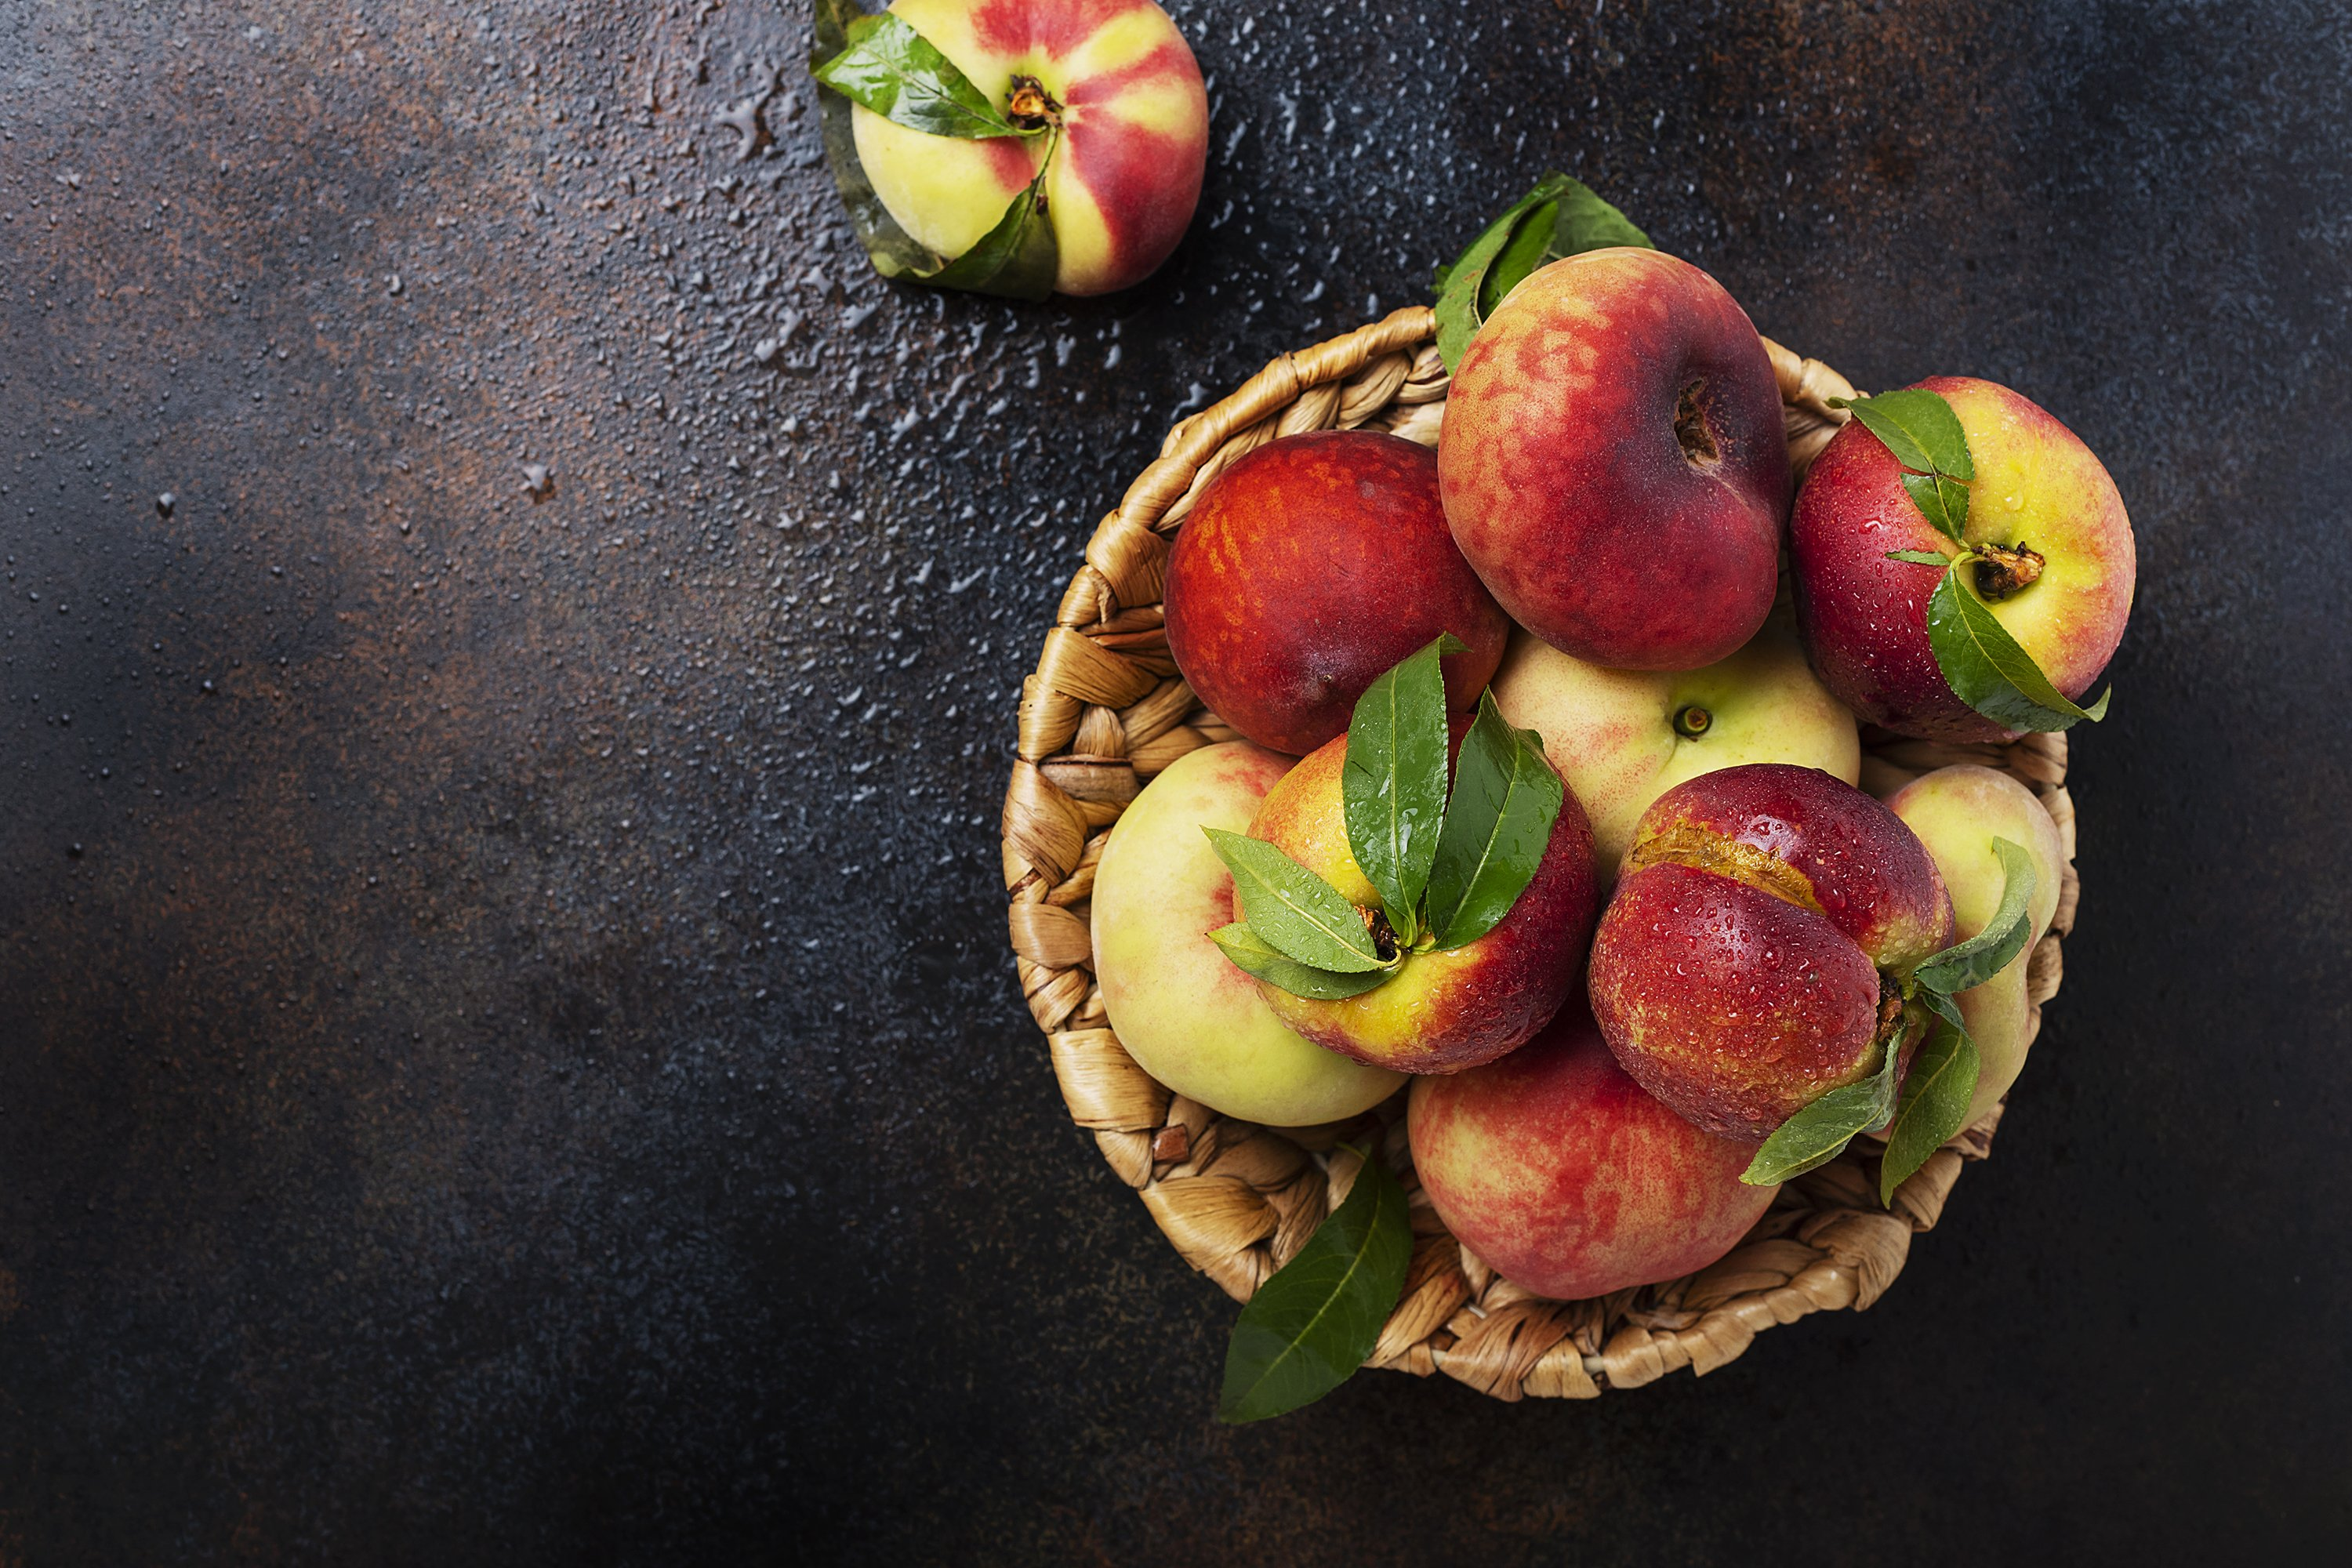 Top down view of sweet peaches with green leaves example image 1